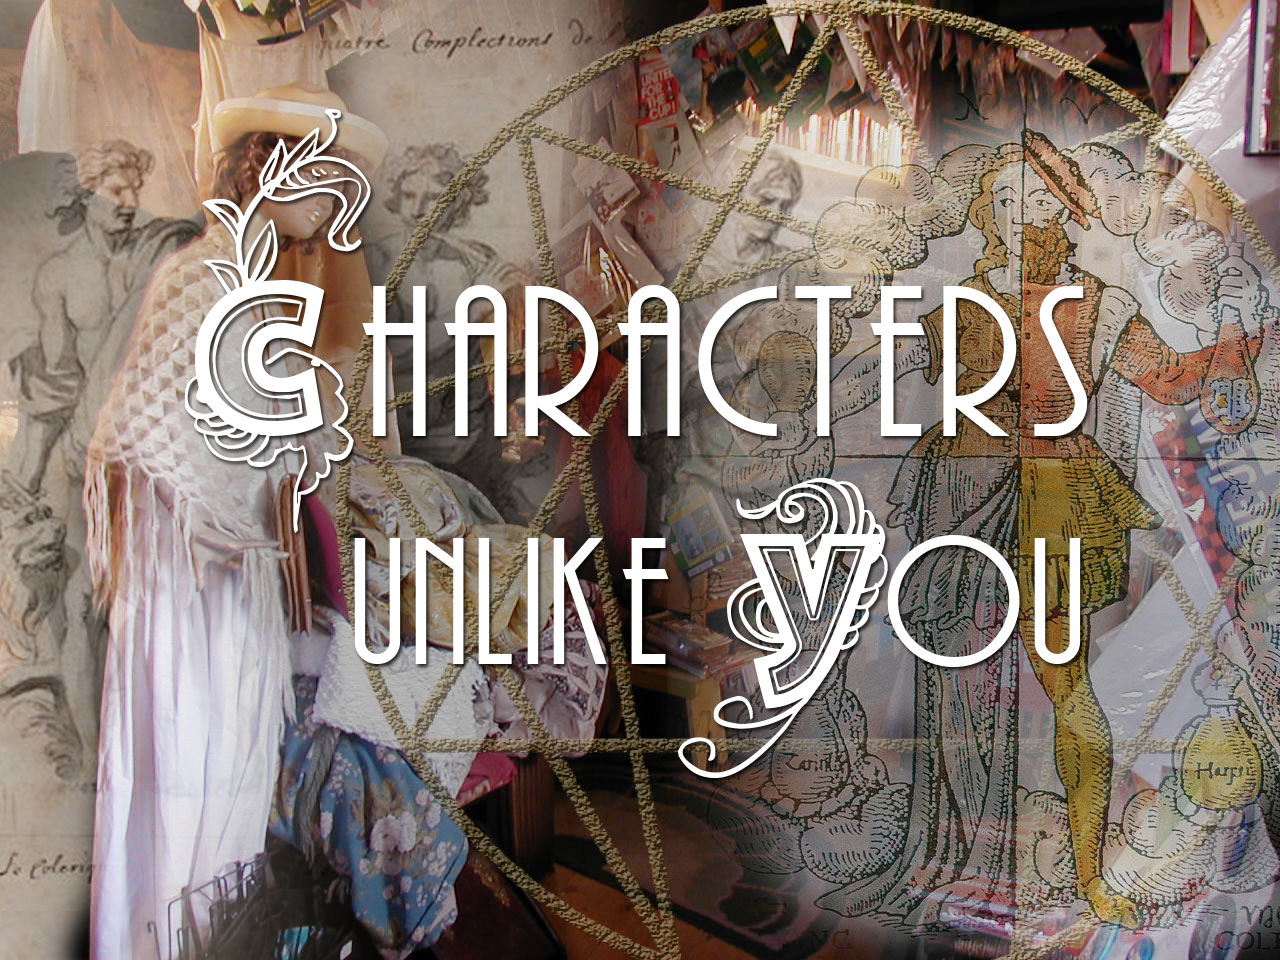 The Characters Unlike You writing workshop